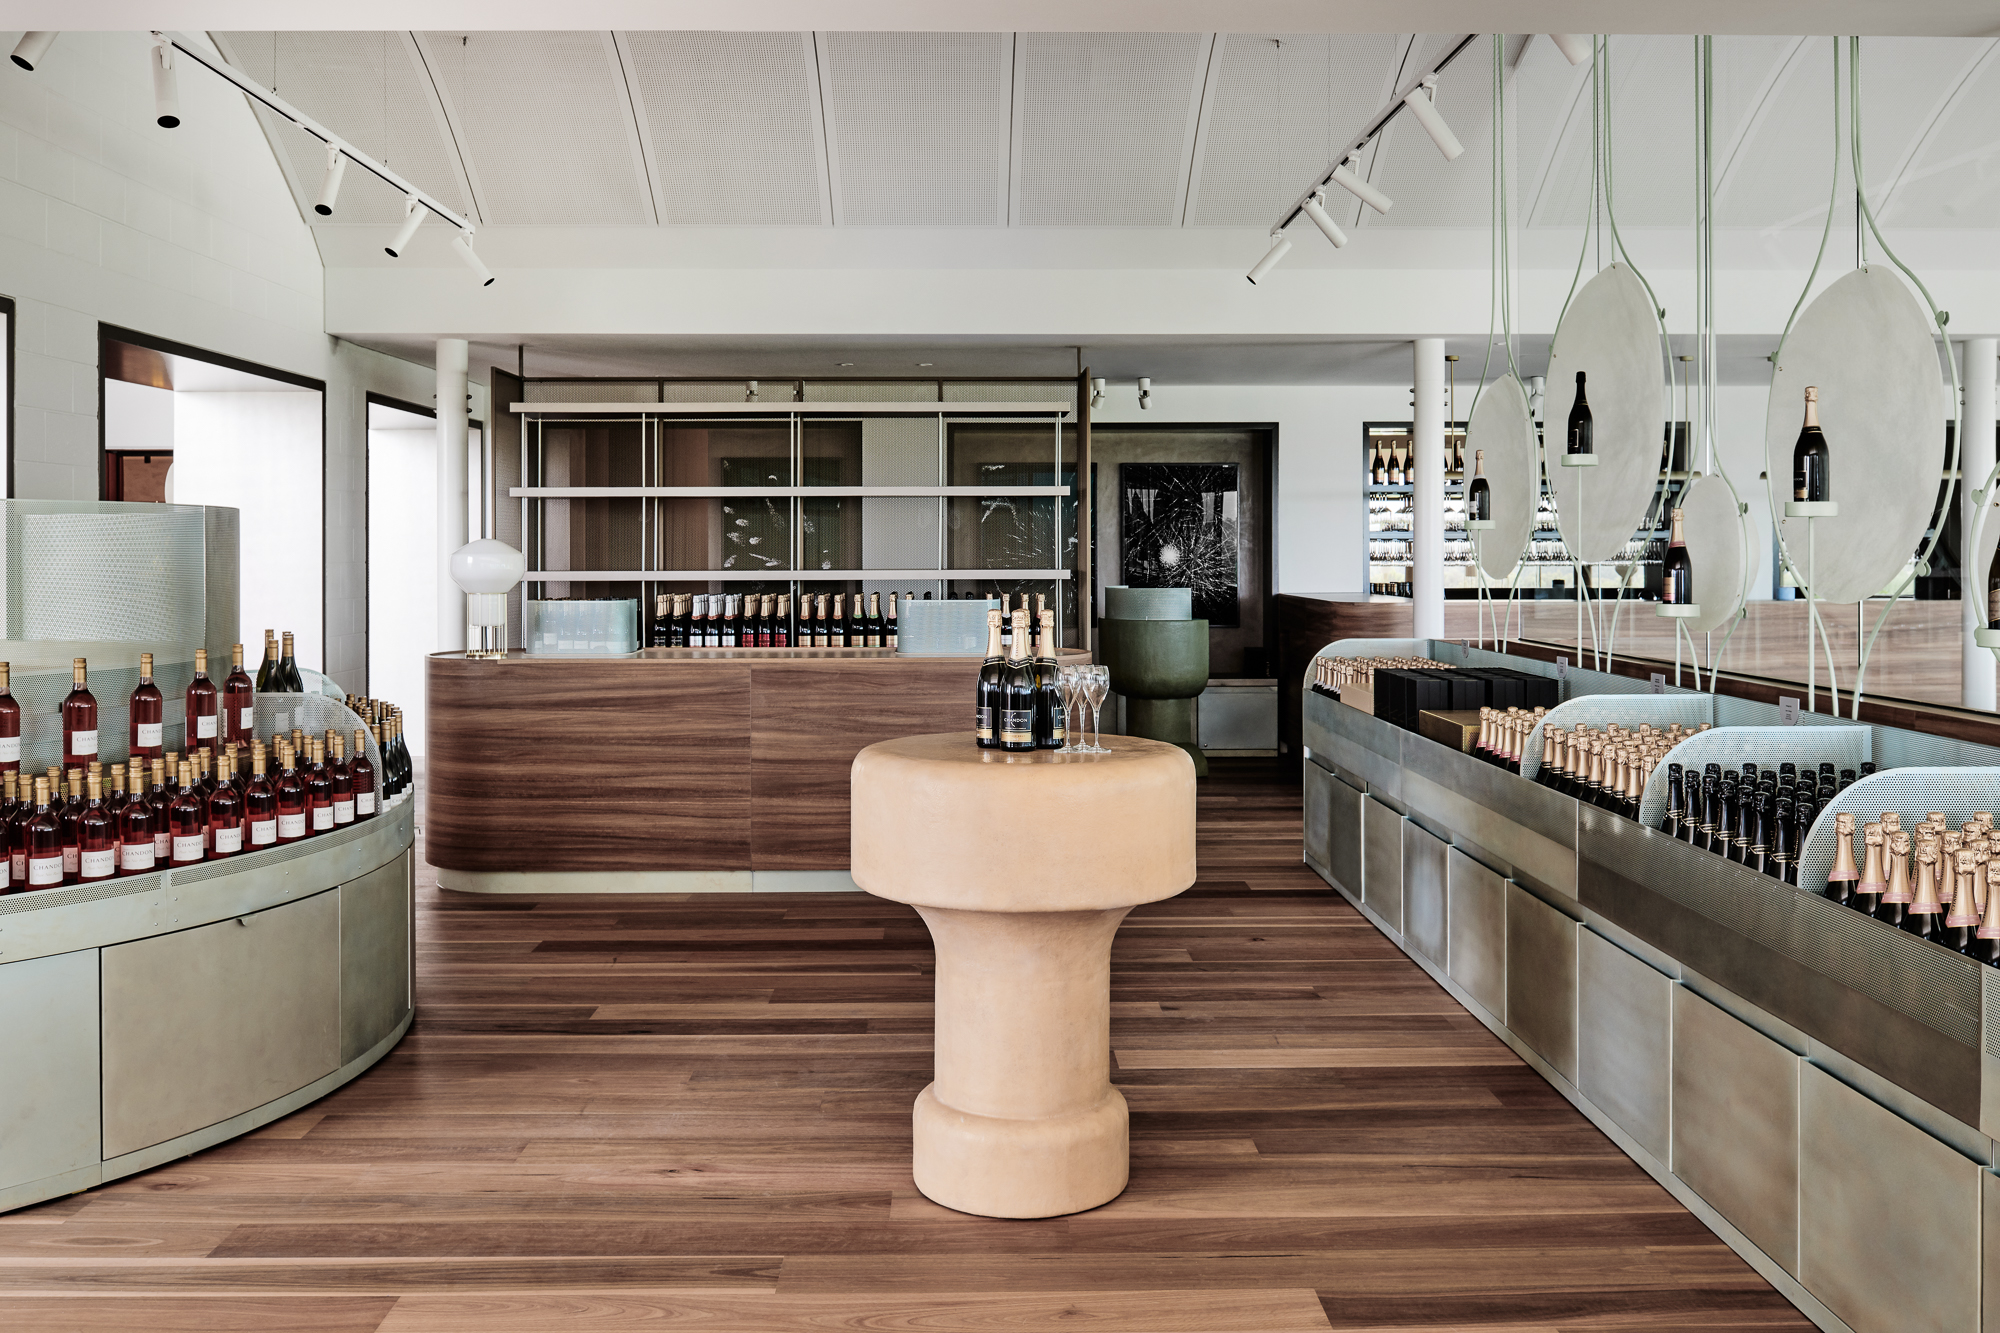 Gallery Of Chandon Australia By Foolscap Studio Local Australian Design And Interiors Yarra Valley, Vic Image 14